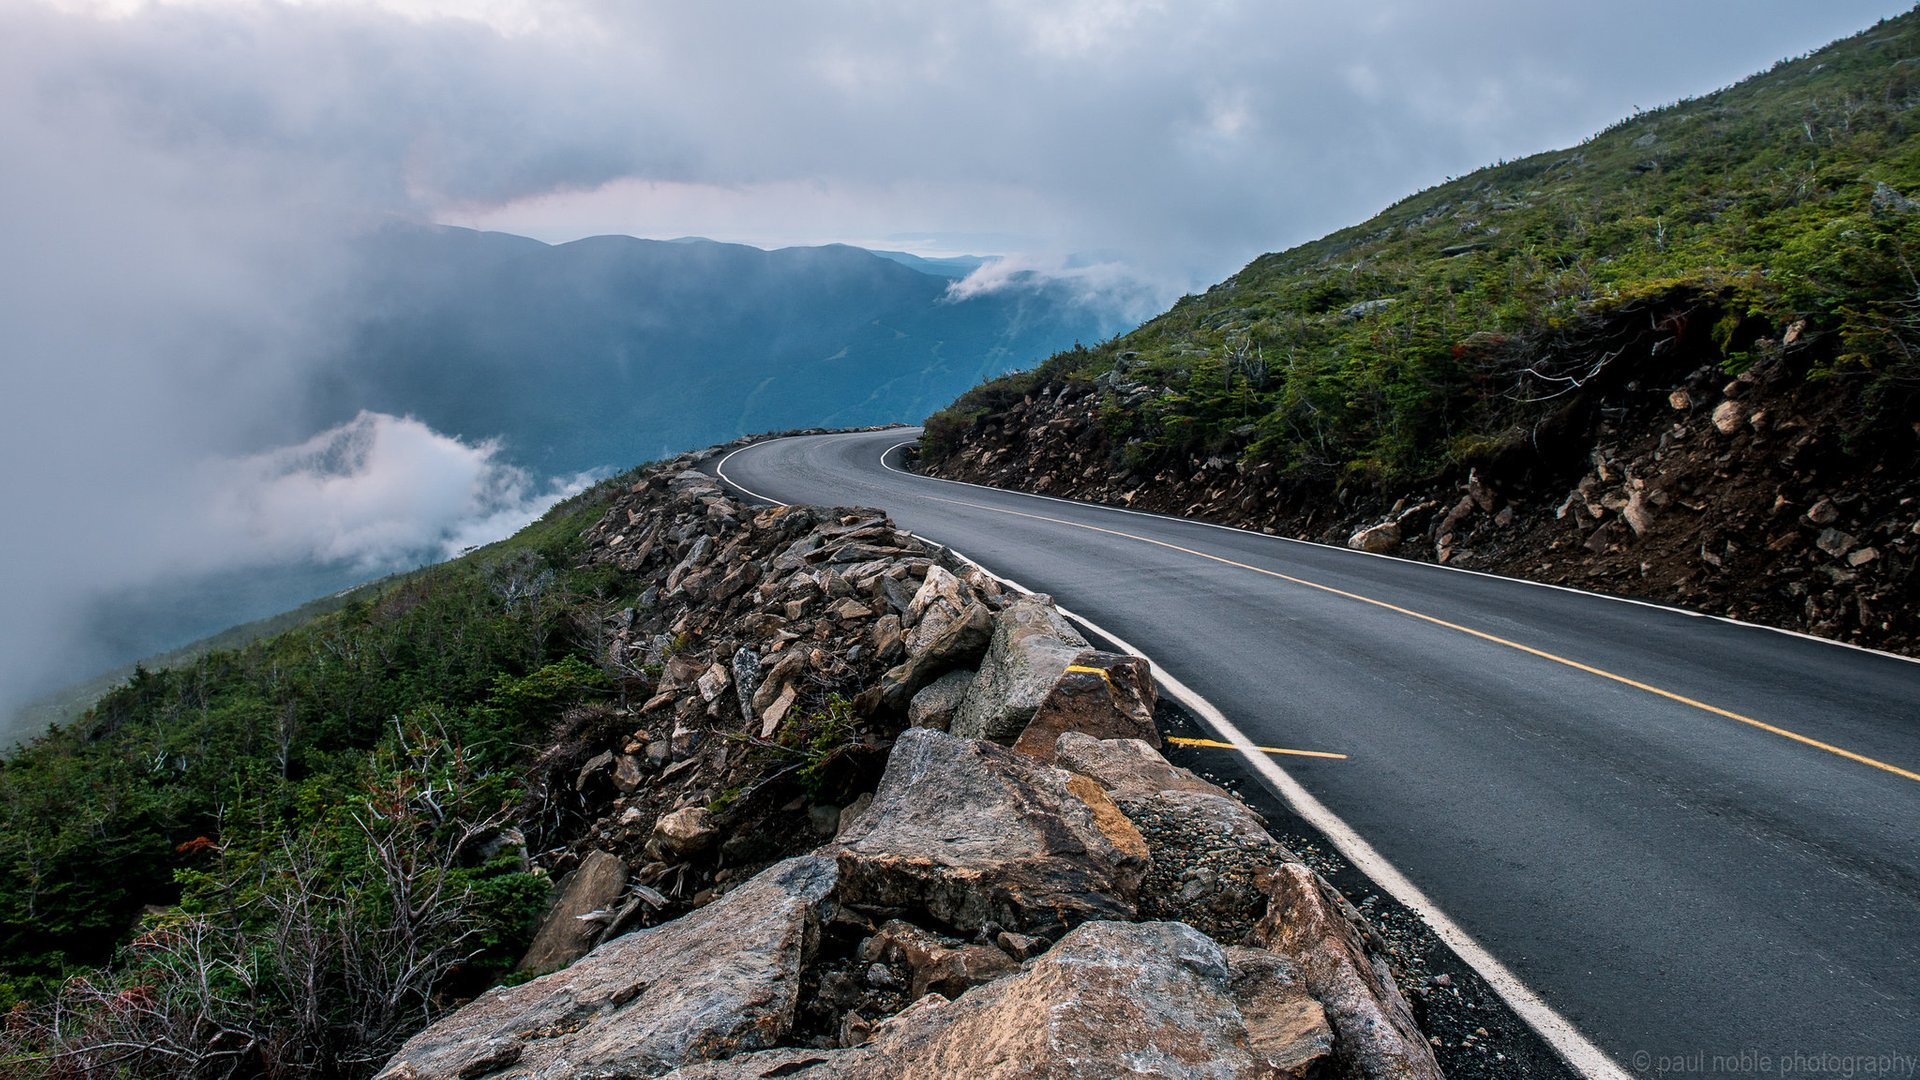 Mount Washington Auto Road in New Hampshire 2020 - Best Time